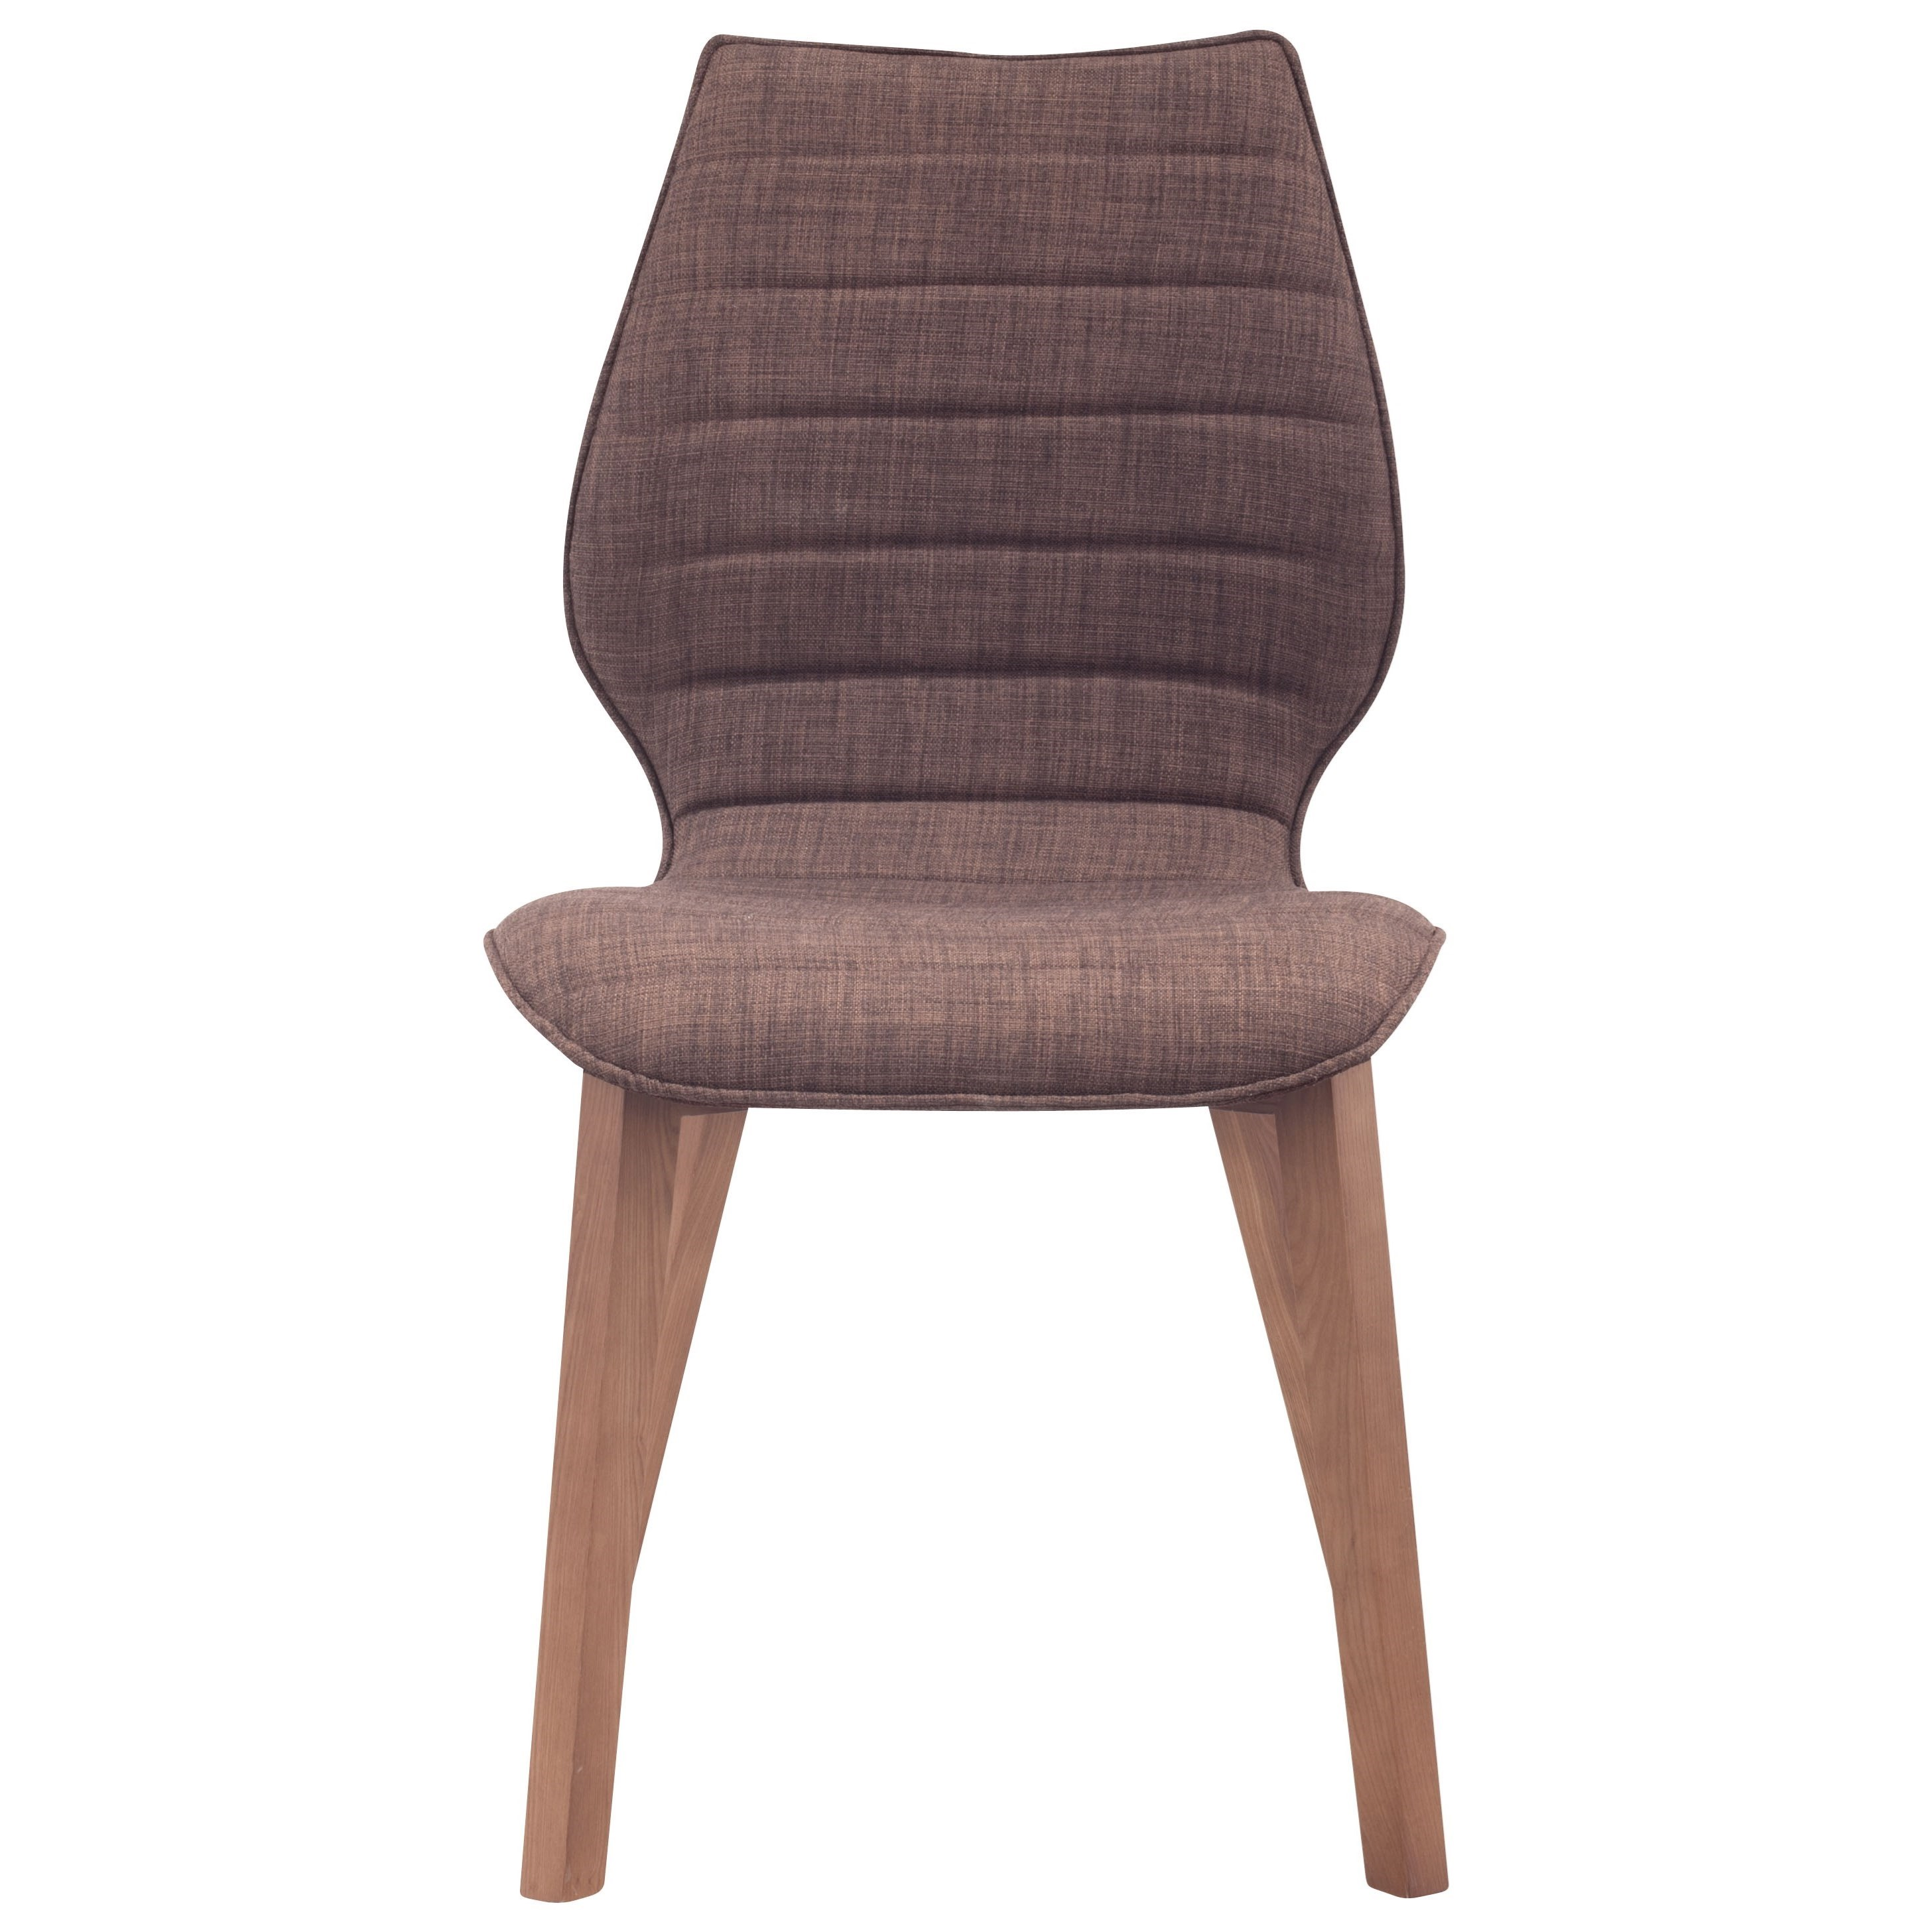 Aalborg Dining Chair by Zuo at Nassau Furniture and Mattress